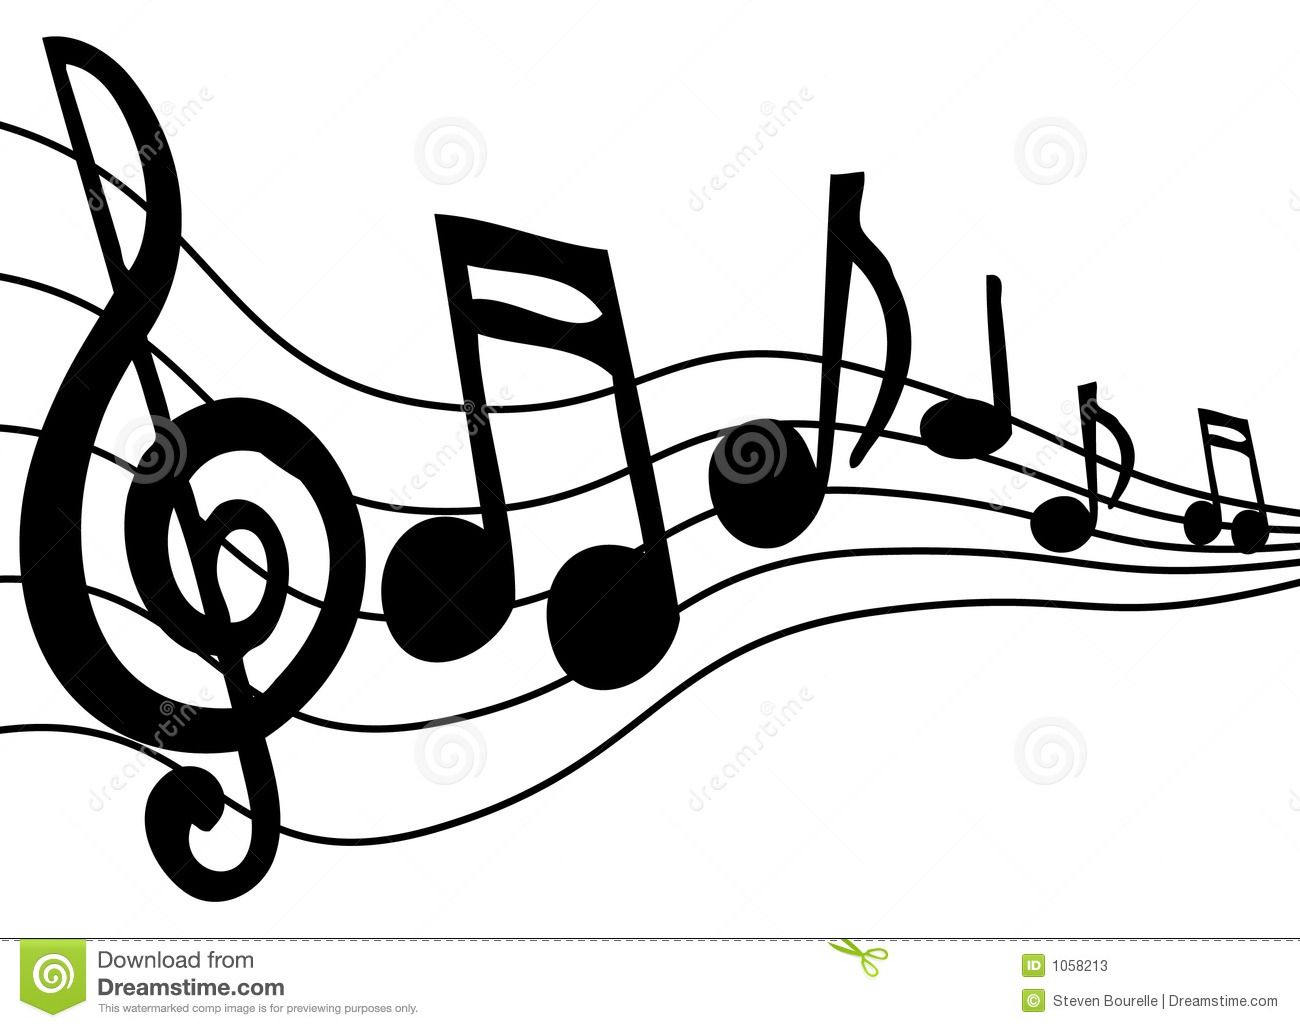 music notes Music Notes Stock Photos | HD Wallpapers Source | scan ...